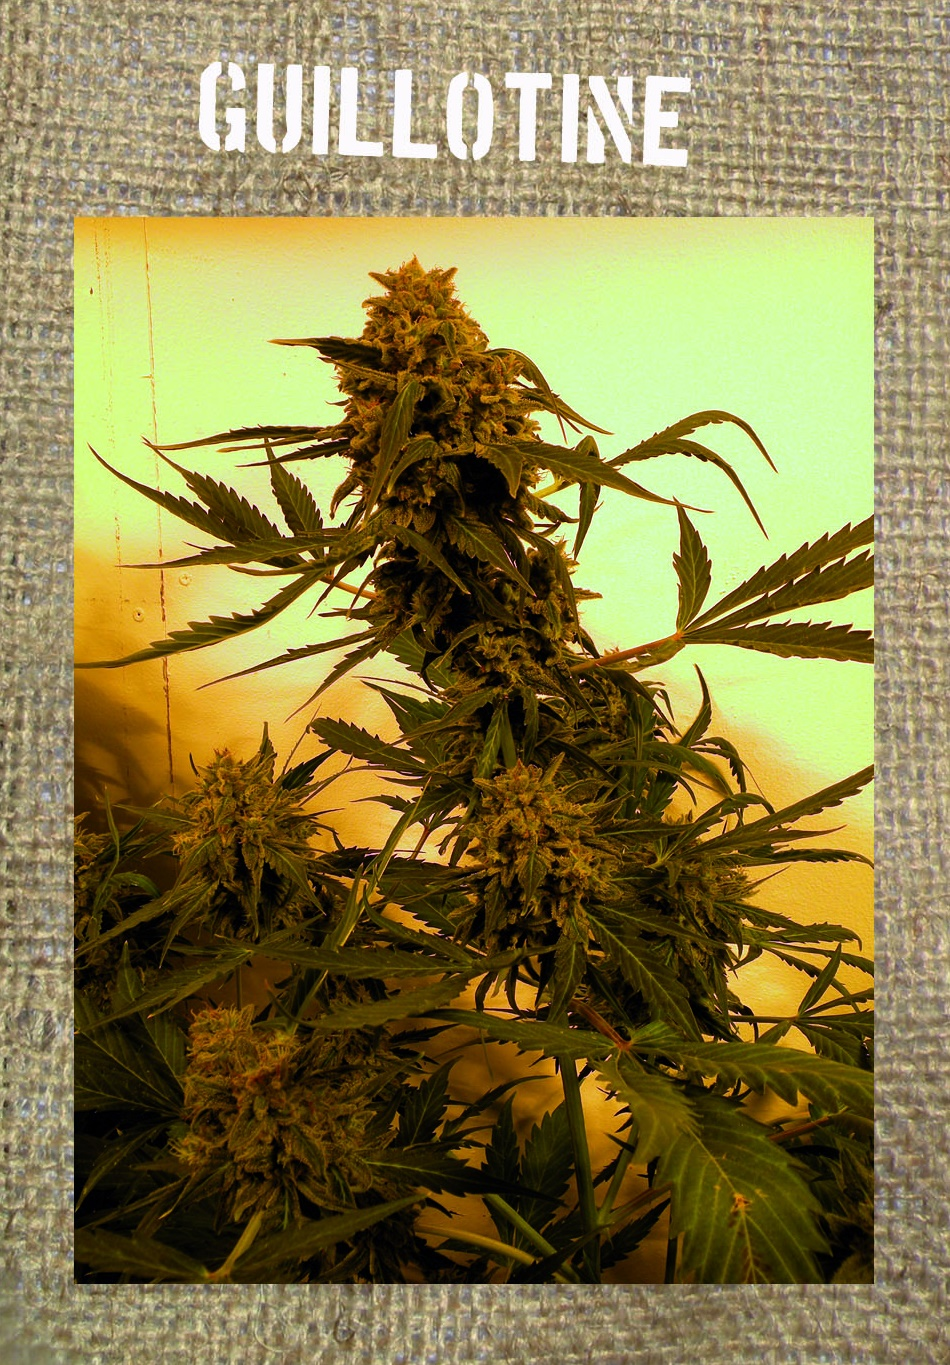 FREE SEEDS from French Touch - Guillotine Auto Feminised - Freebie worth €14